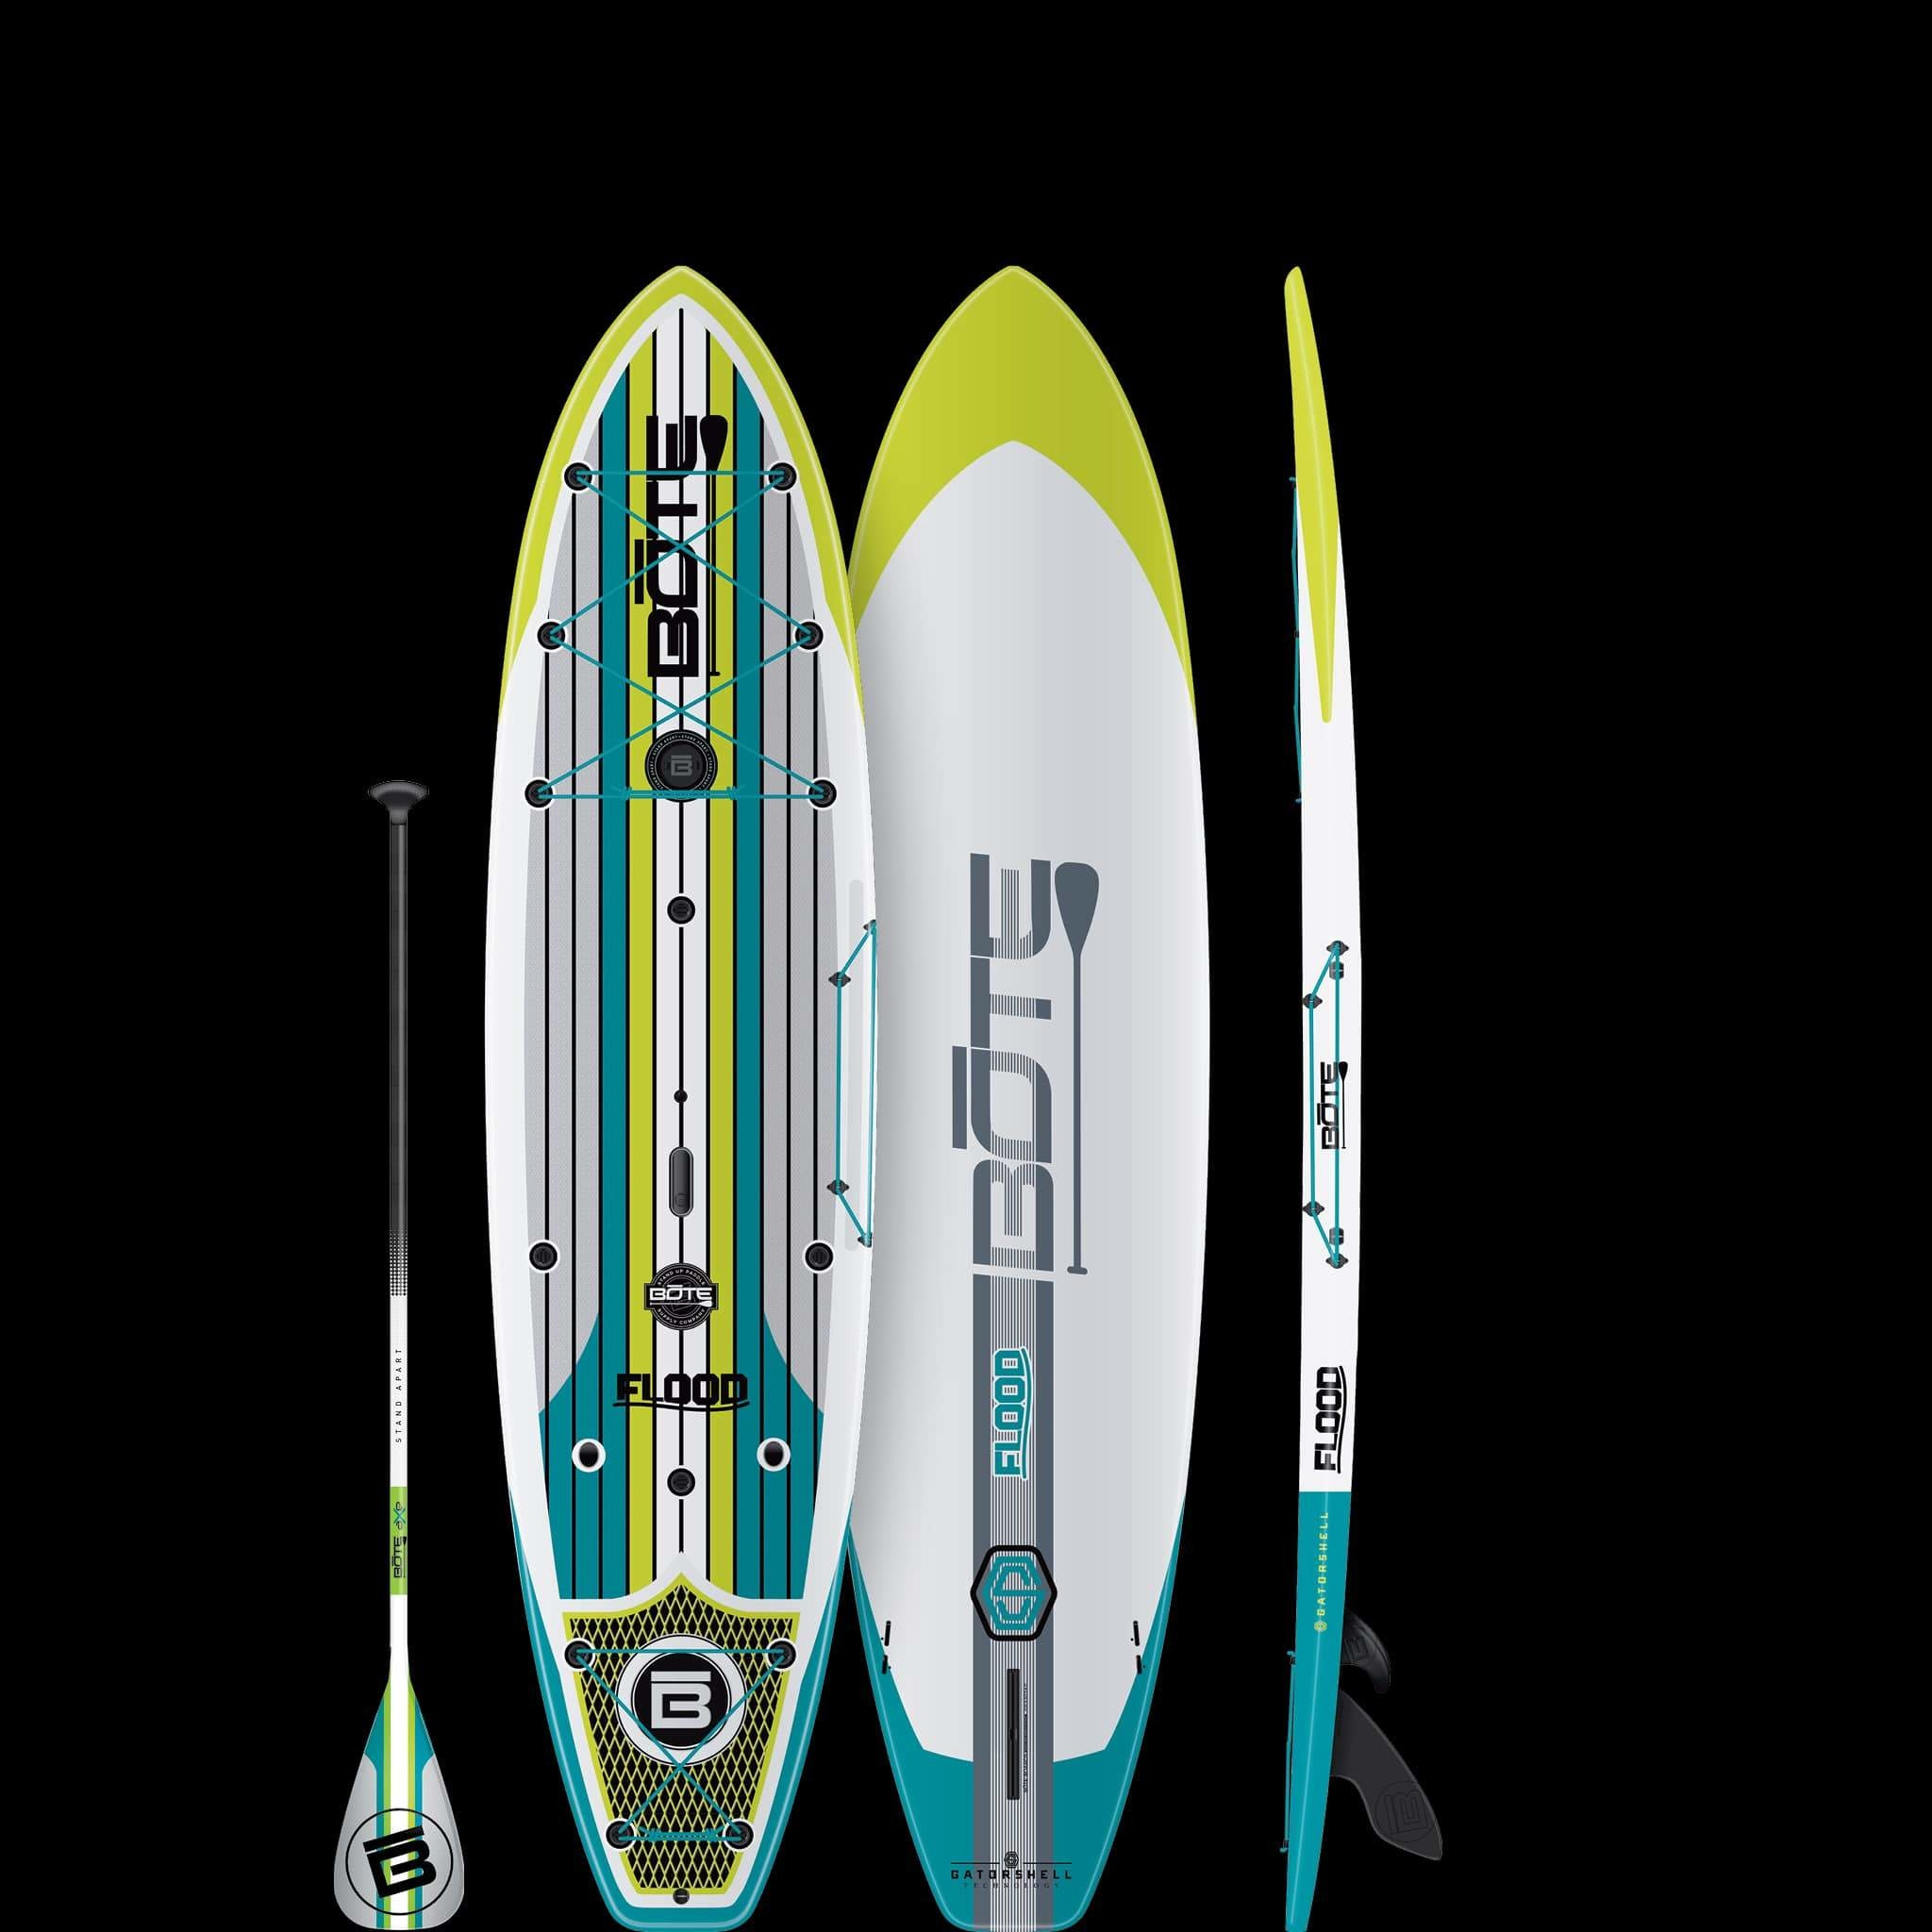 Bote Bote Flood Full Trax Hard Board